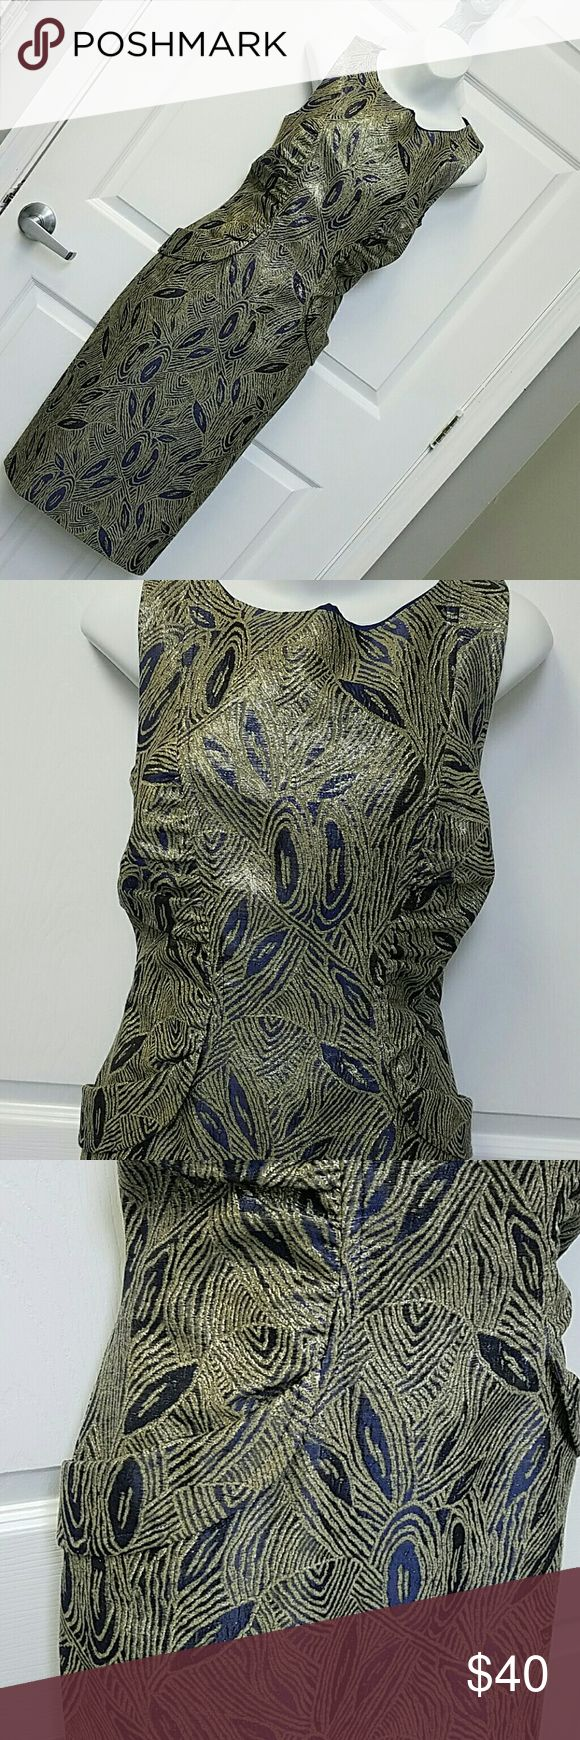 David Meister Dress. Size 10. EUC David Meister Dress. Size 10. EUC, worn once.  Rounded bodice and front pockets. David Meister Dresses